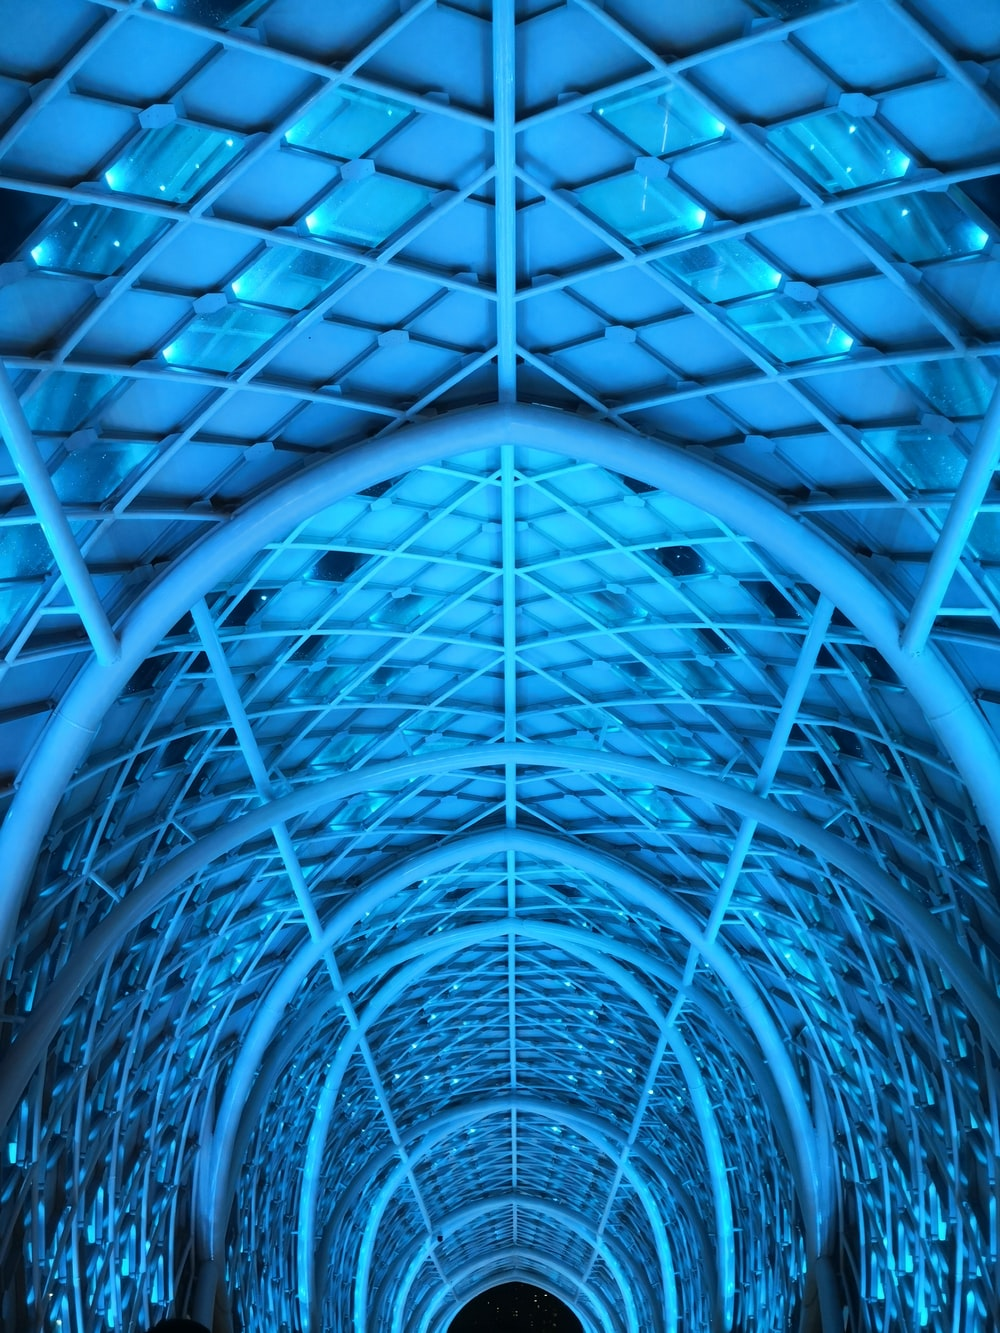 blue and black glass roof